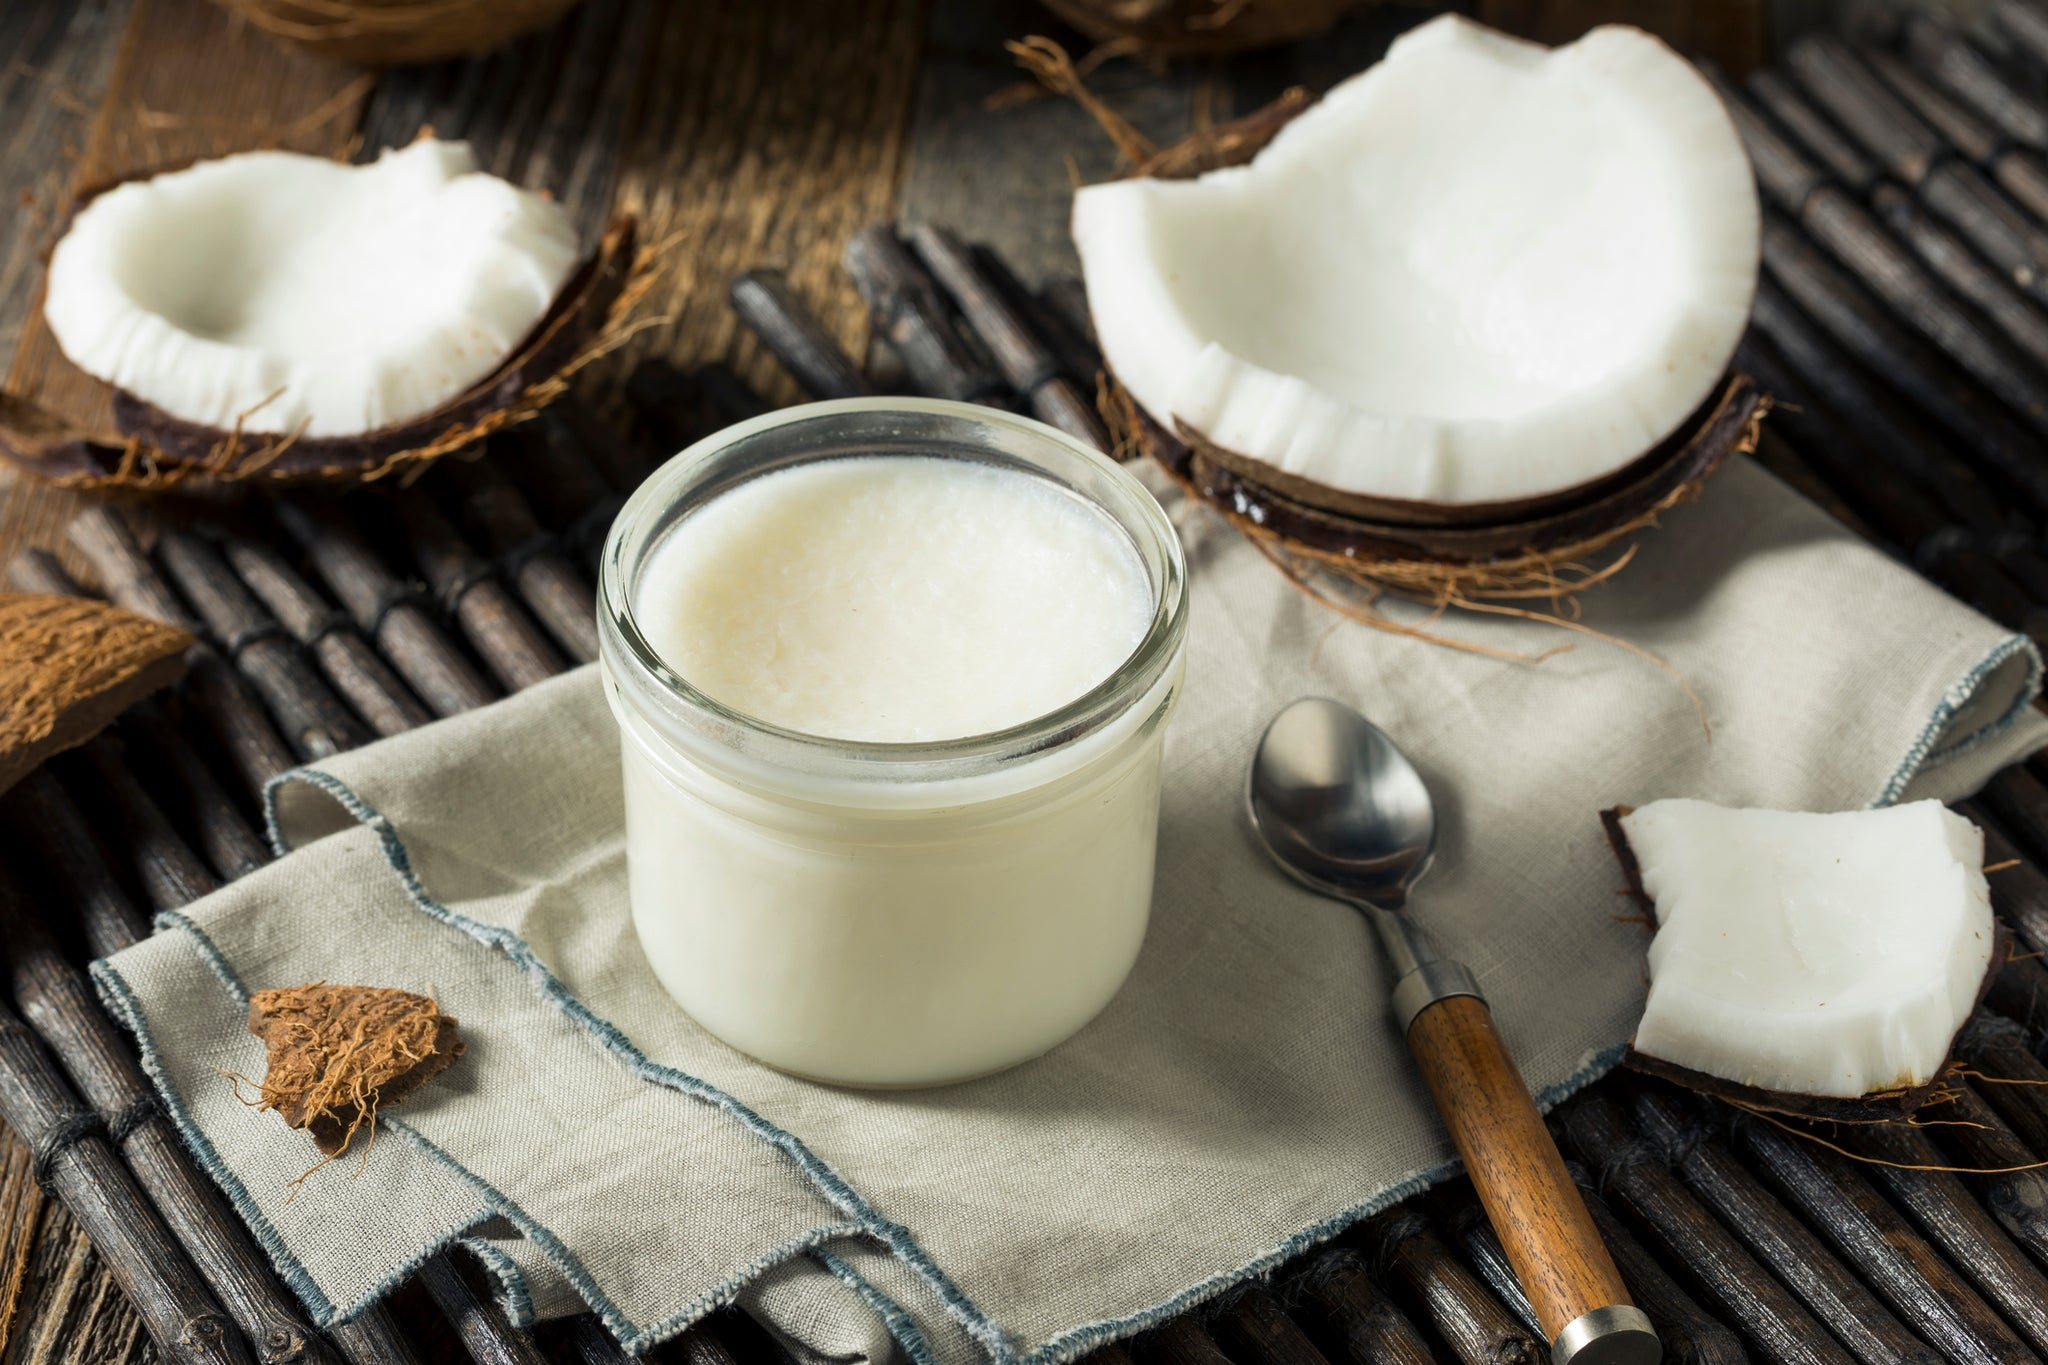 Is Coconut Oil the Ultimate Brain Food? (What the Research Shows)